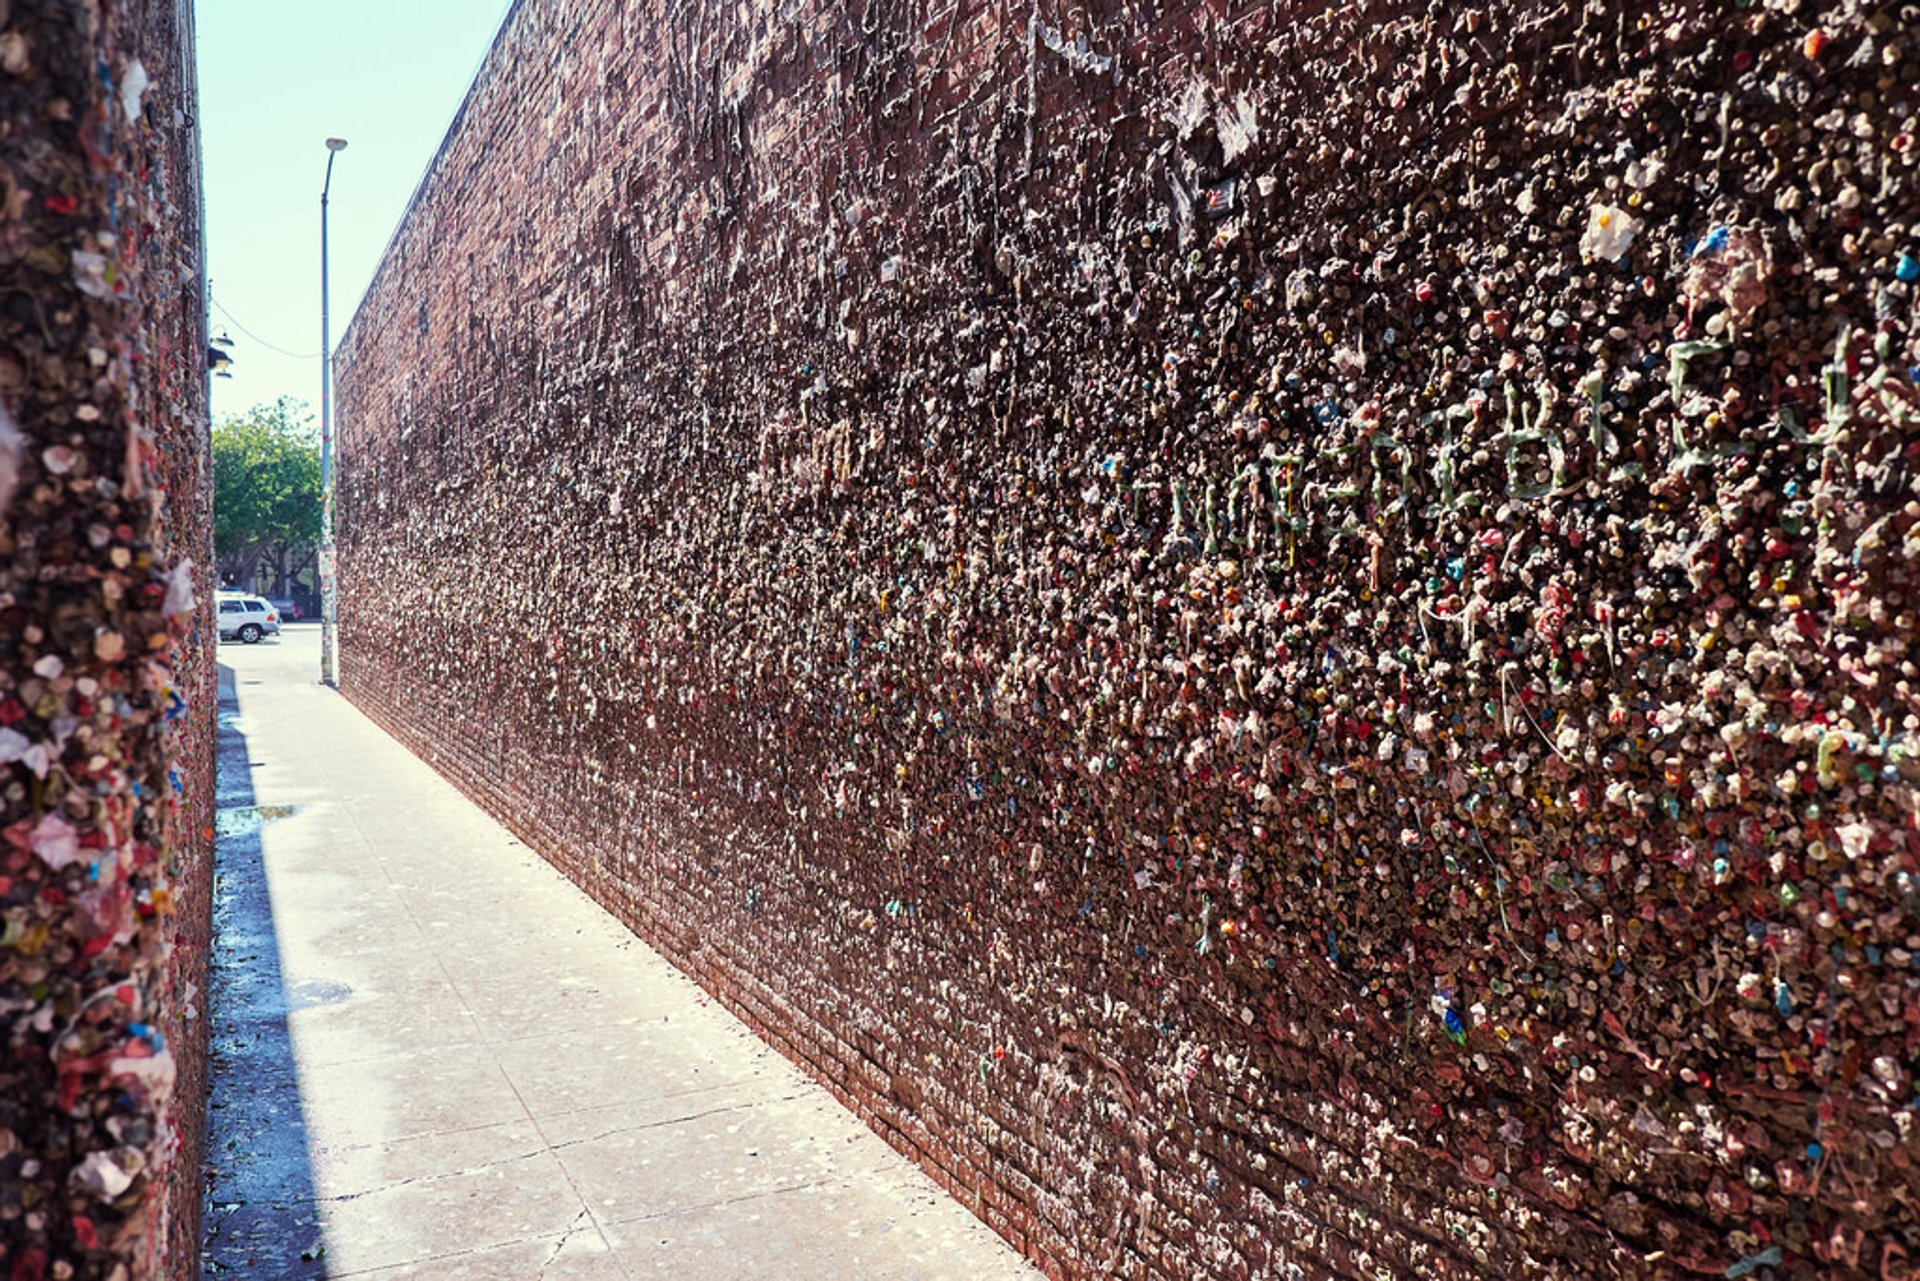 Best time to see Bubblegum Alley in California 2020